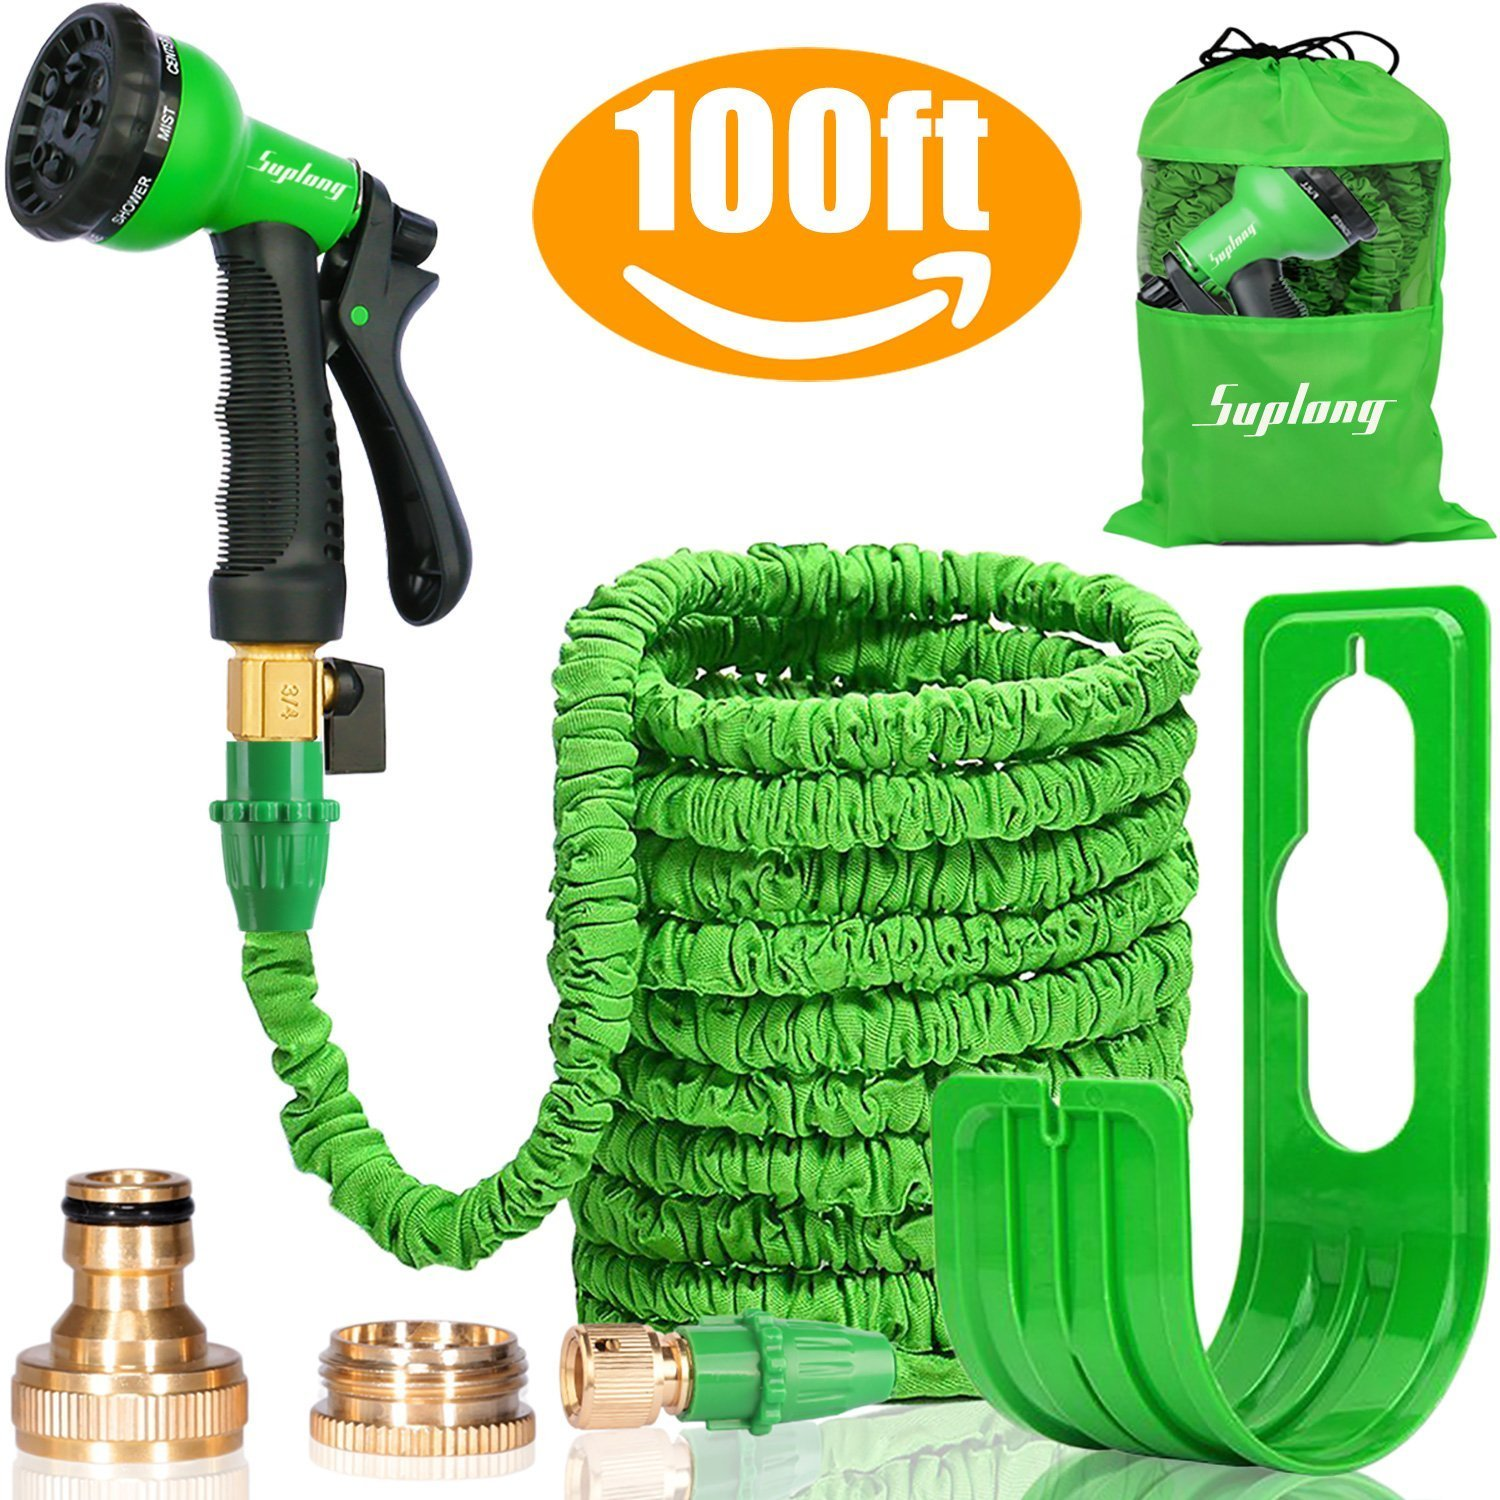 150 ft garden hose uk garden ideas. Black Bedroom Furniture Sets. Home Design Ideas